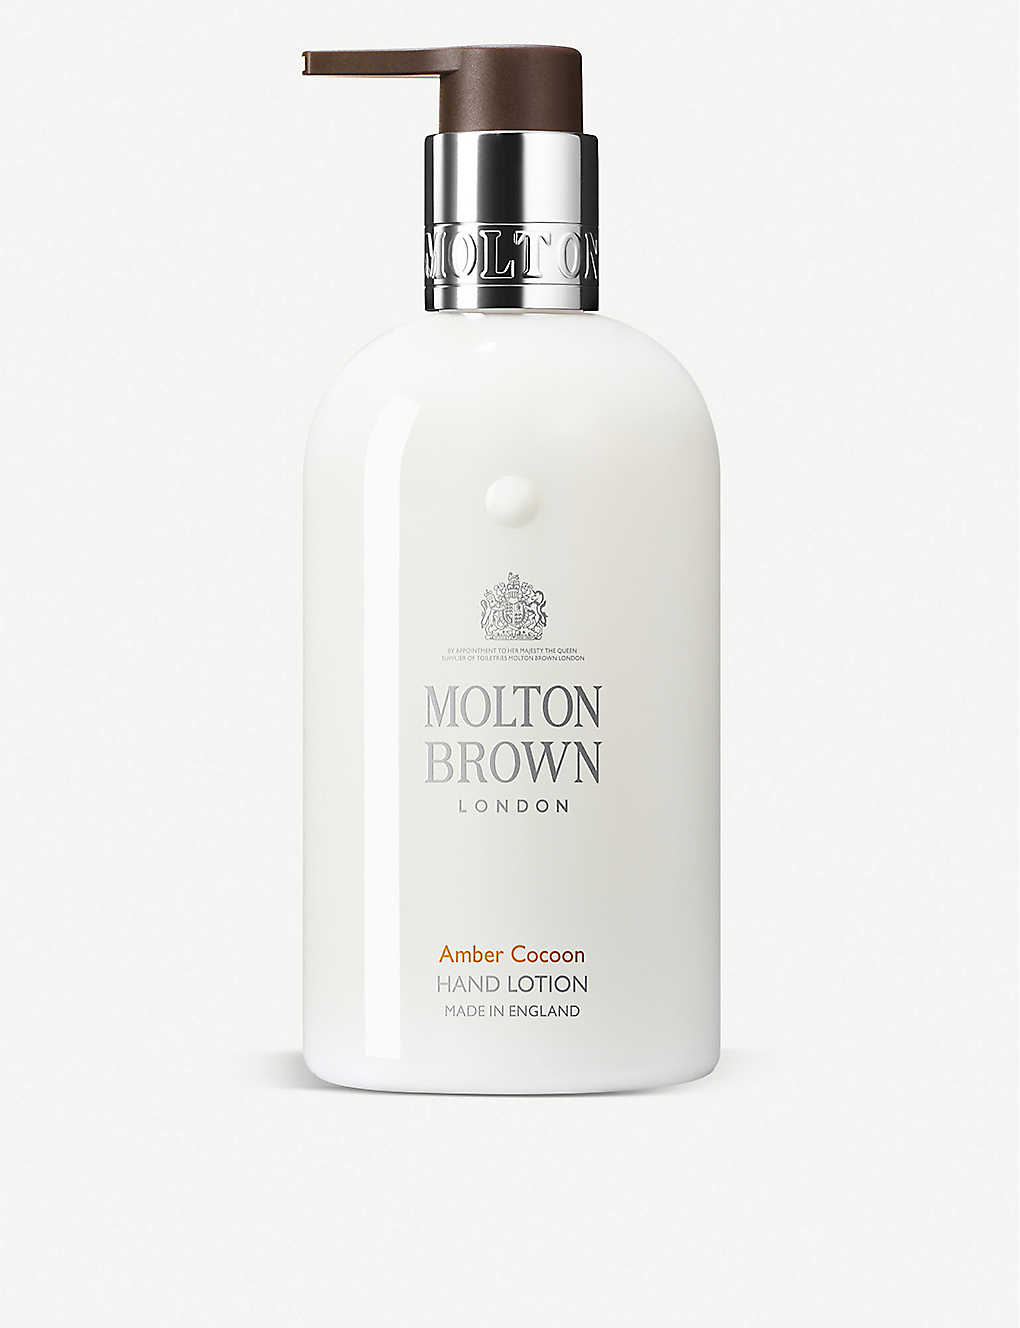 MOLTON BROWN: Amber Cocoon Hand Lotion 300ml